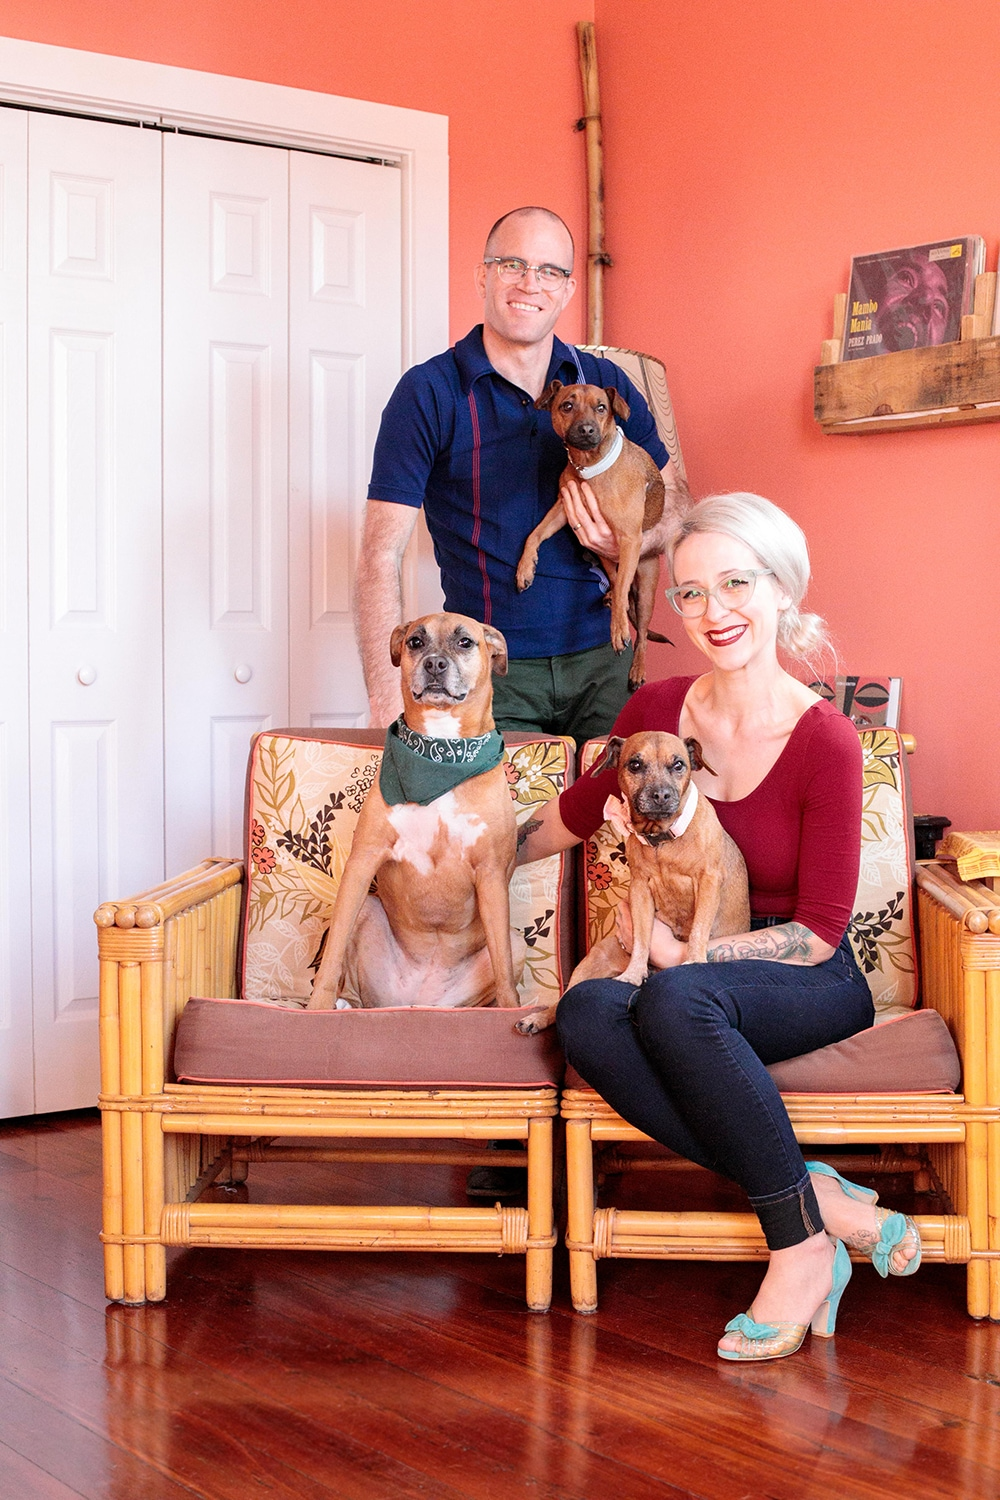 new-orleans-family-pet-portrait-5.jpg